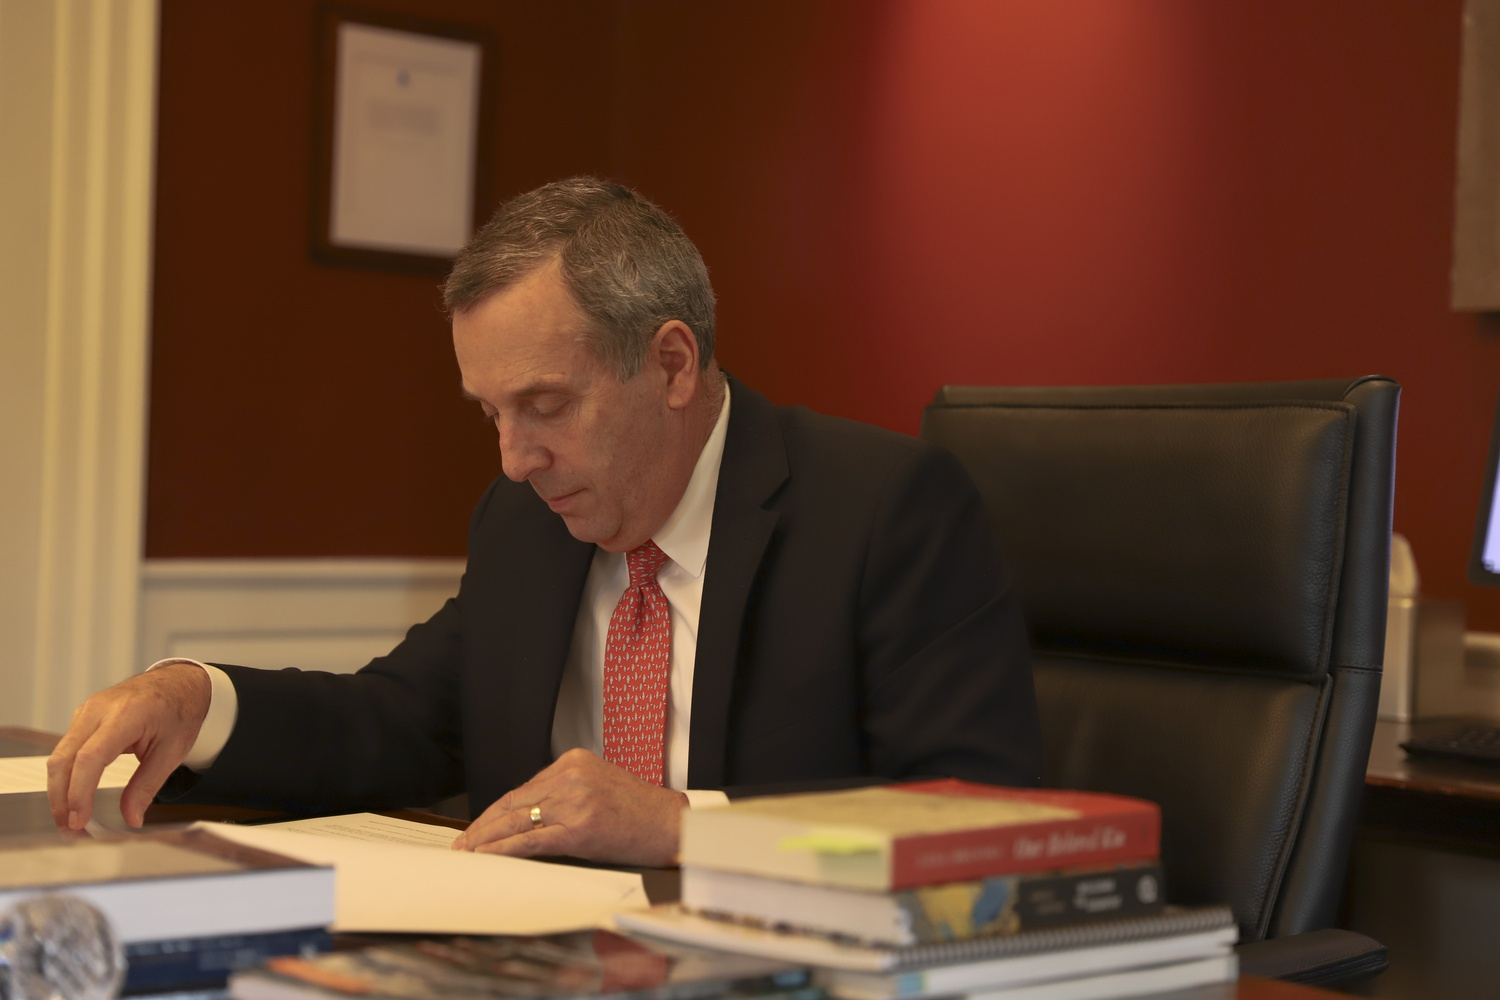 A group of alumni and faculty sent University President Lawrence S. Bacow a letter in favor of divesting Harvard's endowment from fossil fuels.